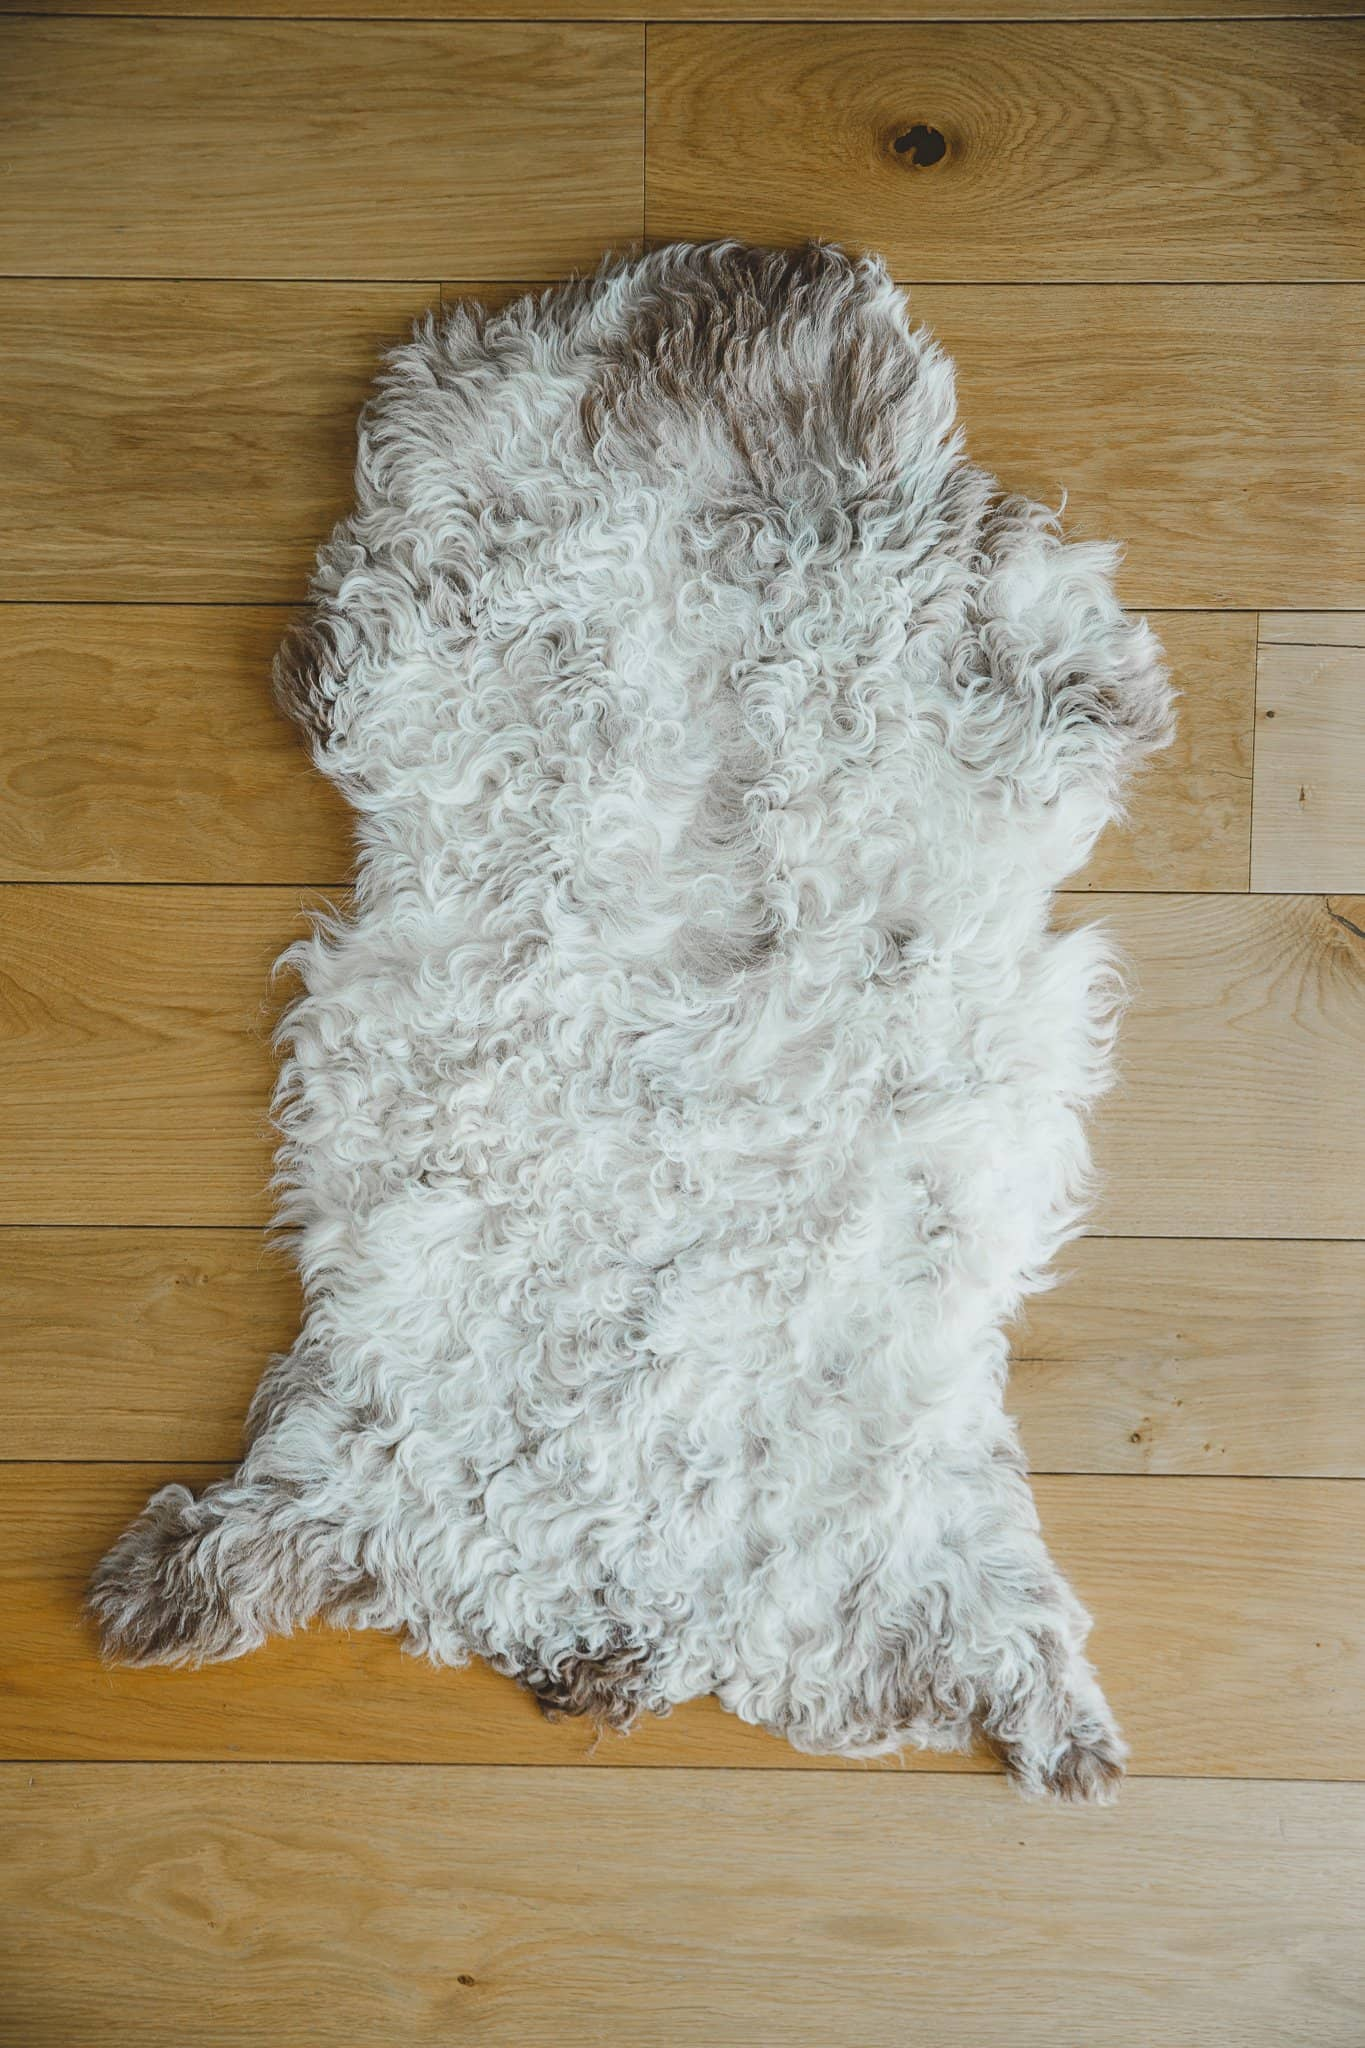 Nordvek Spanish sheepskin rug 616-100 design 1 in front of fire